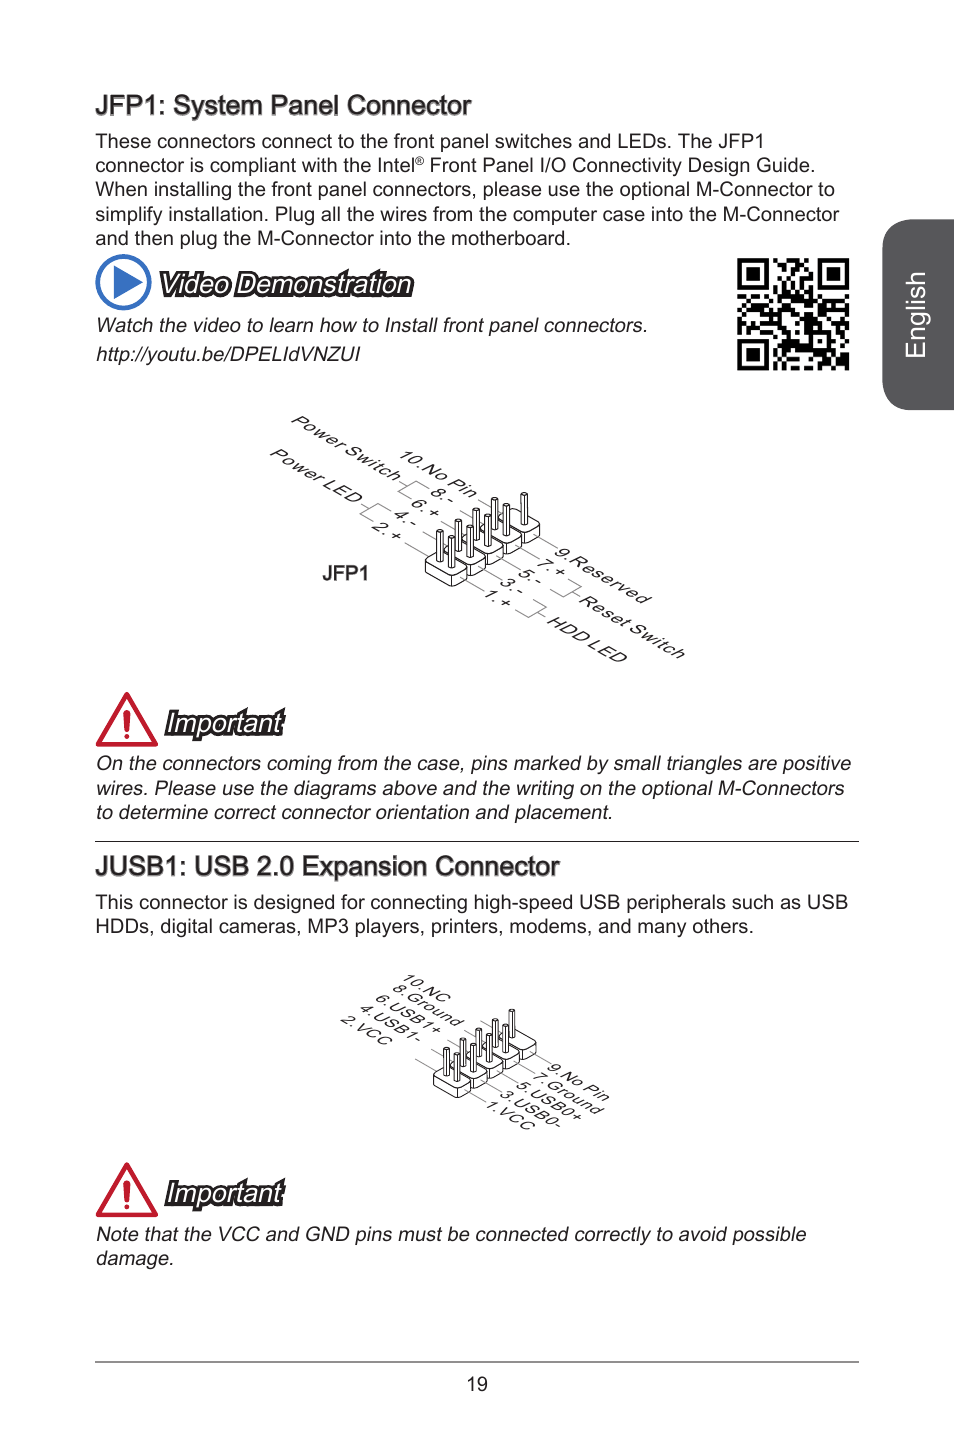 medium resolution of english jfp system panel connector video demonstration msi residential electrical wiring diagrams english